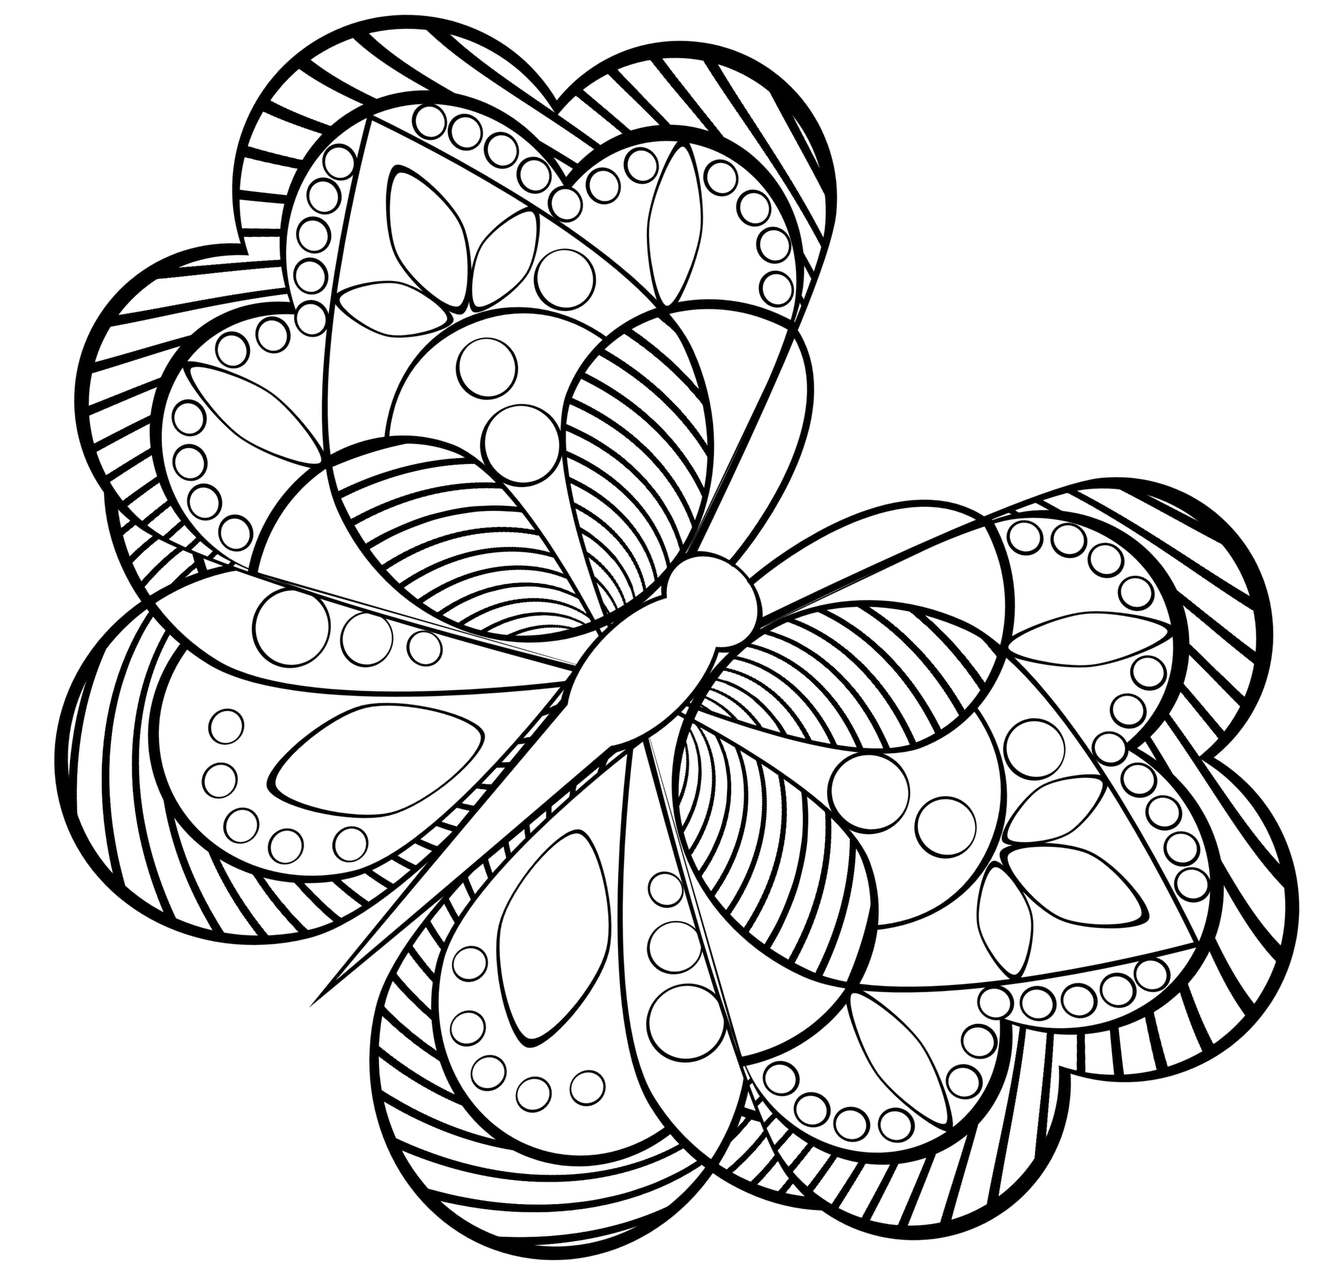 free coloring pages online disney coloring pages to download and print for free online pages coloring free